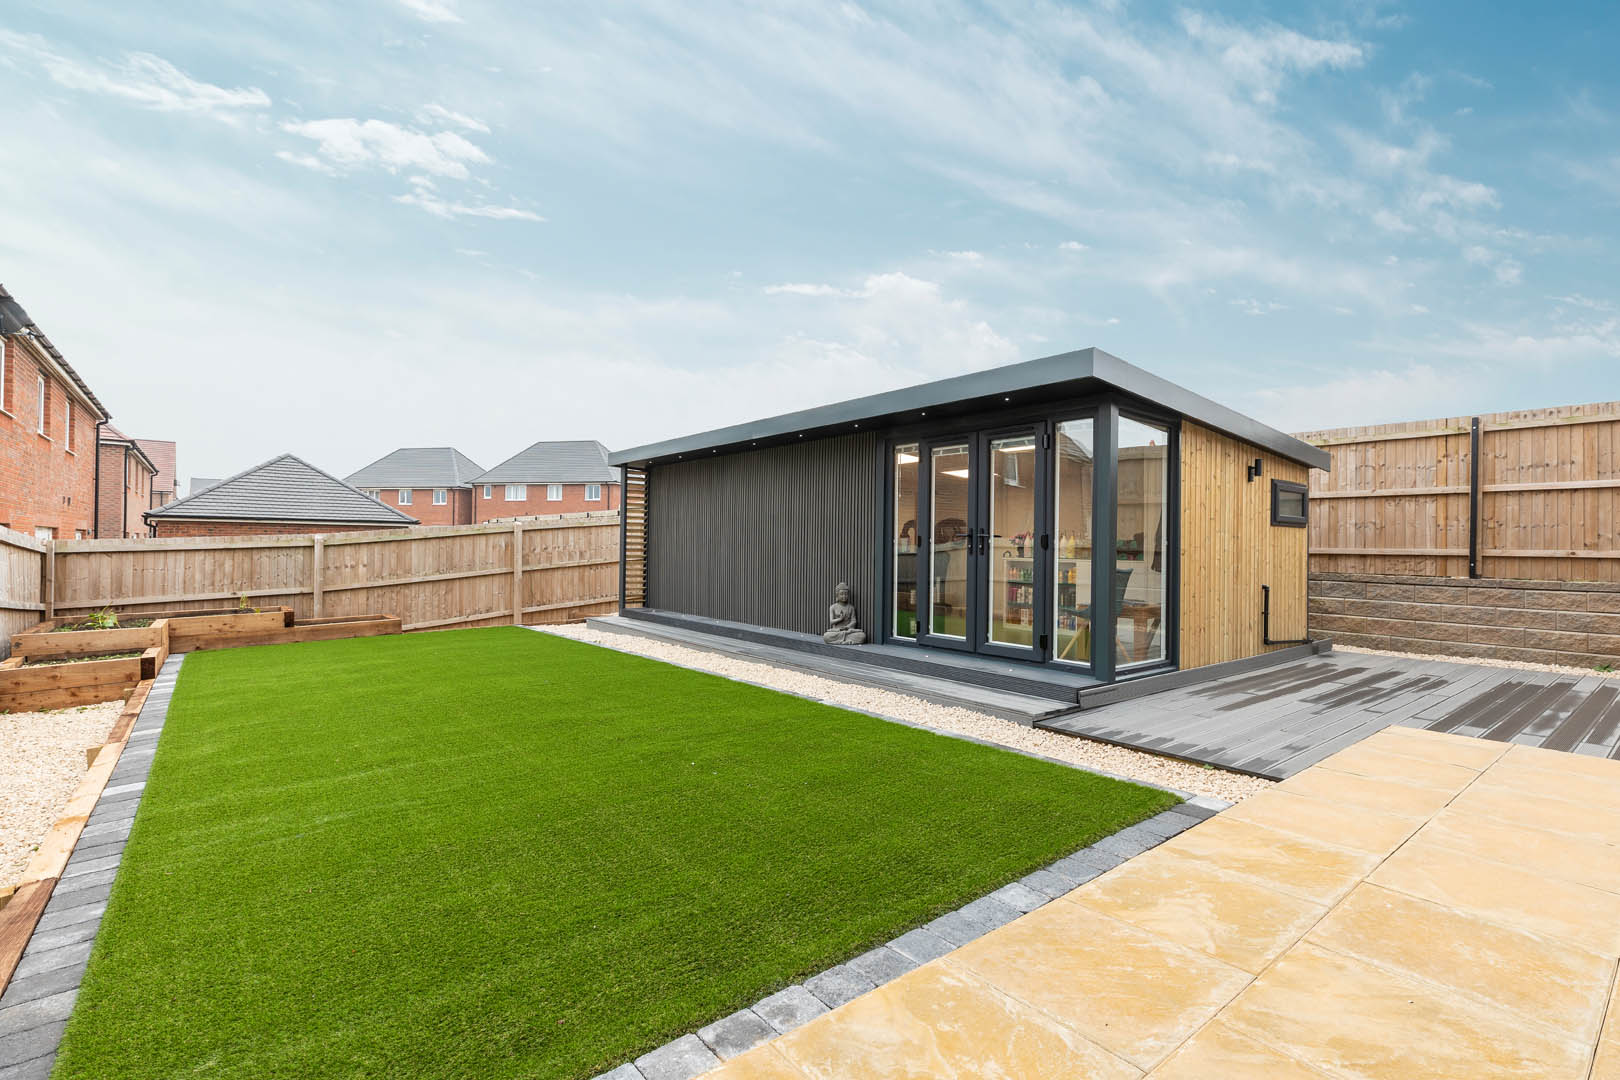 Side angle of a garden hair & beauty salon in a garden with a fence around it, astro turf and decking on top of paving